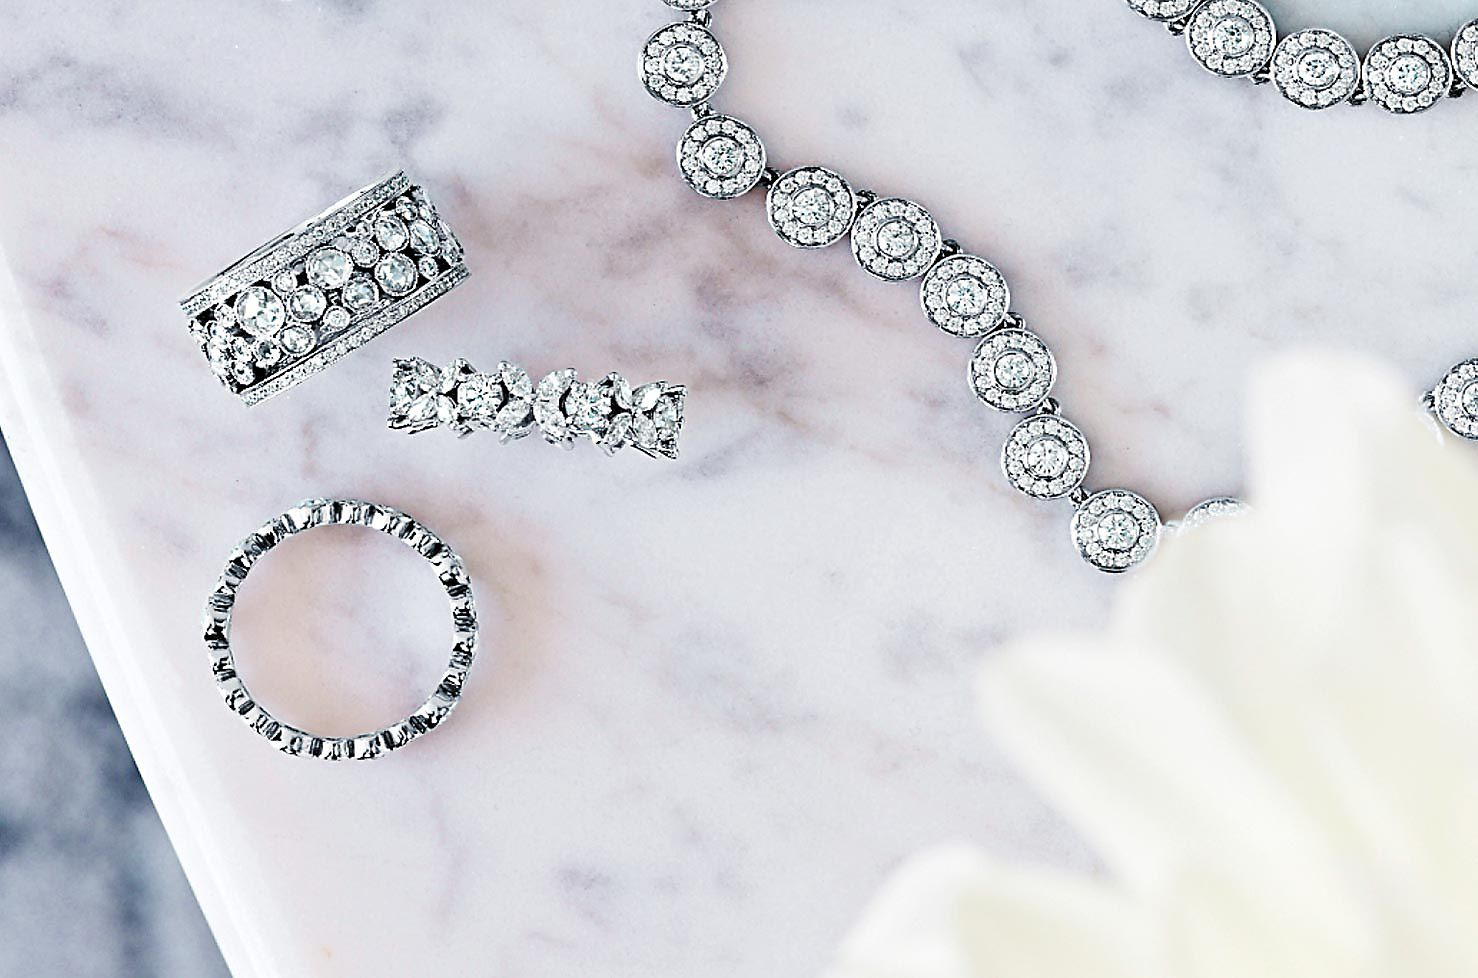 Wedding Gift For Bride Tiffany : Wedding Gift Ideas and Jewelry Tiffany & Co.